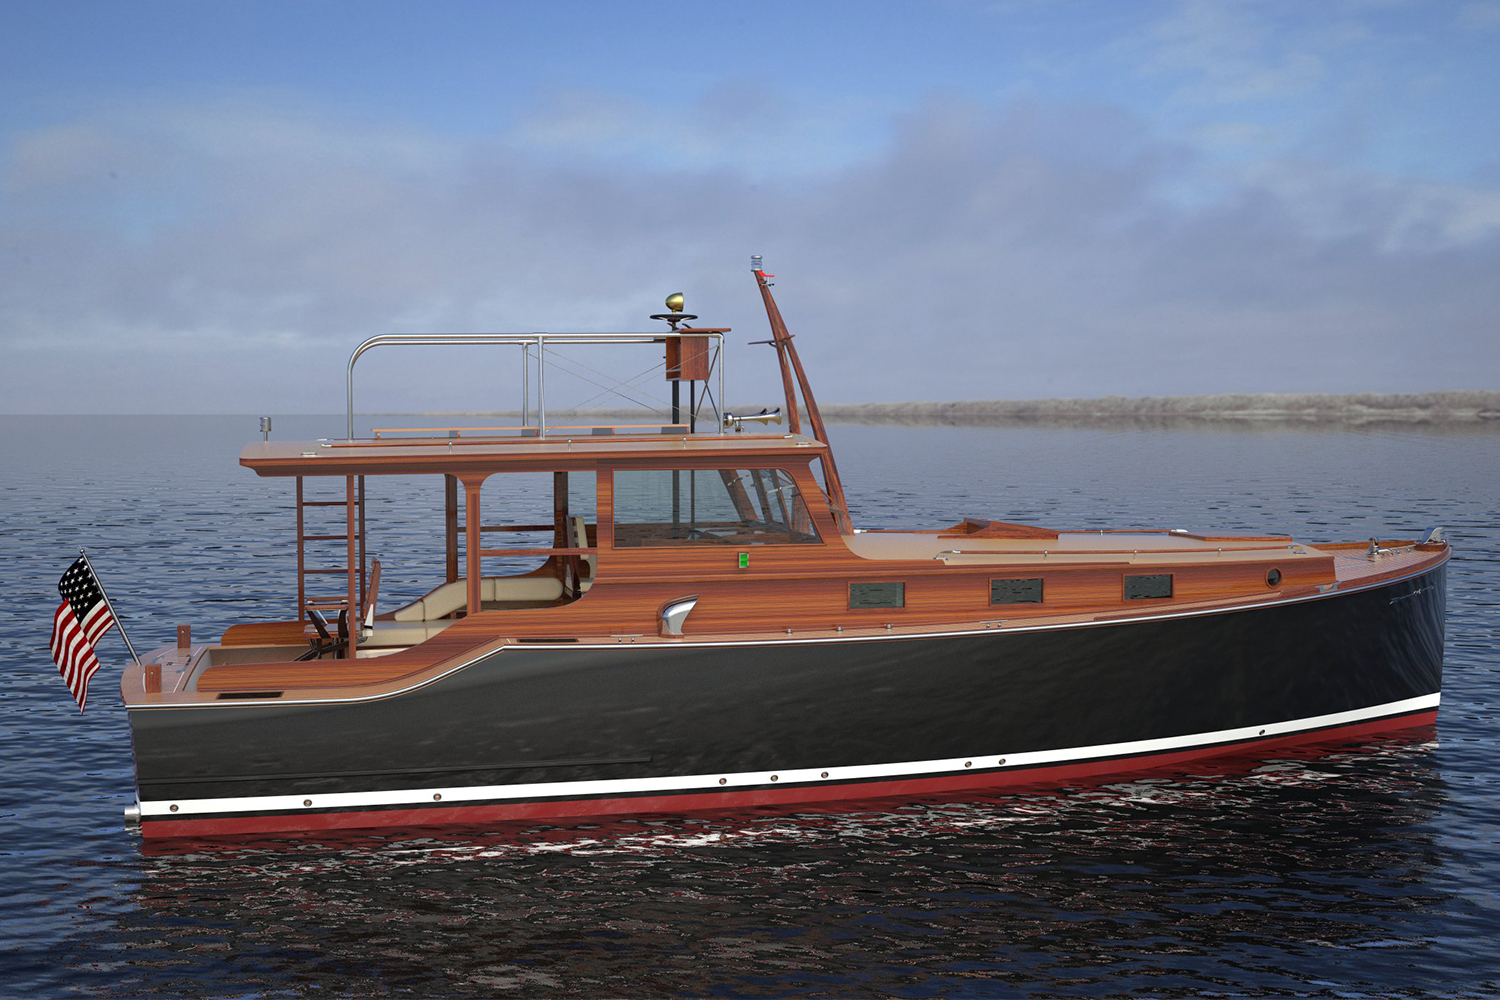 Ernest Hemingway's Boat Pilar Is Back From The Dead, And You Can Buy It